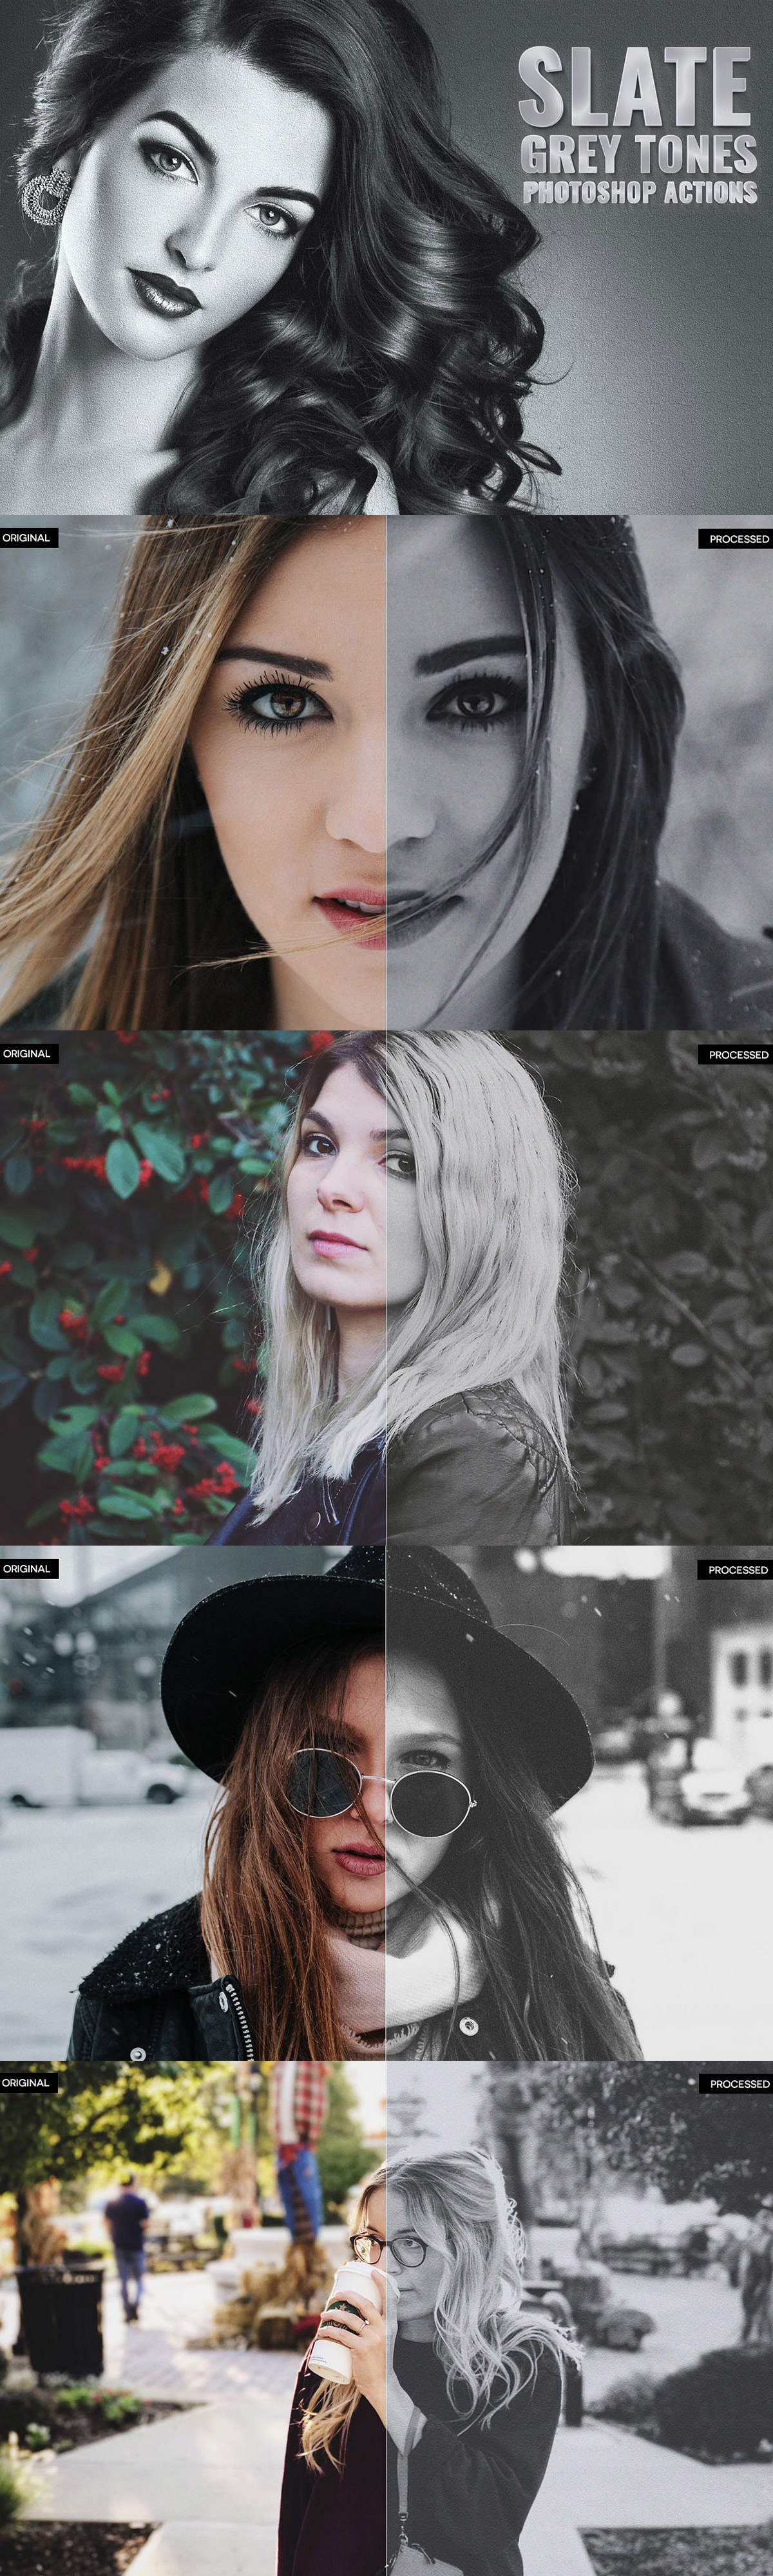 20+ Creative Photoshop Actions That Will Save Off Hours of Work